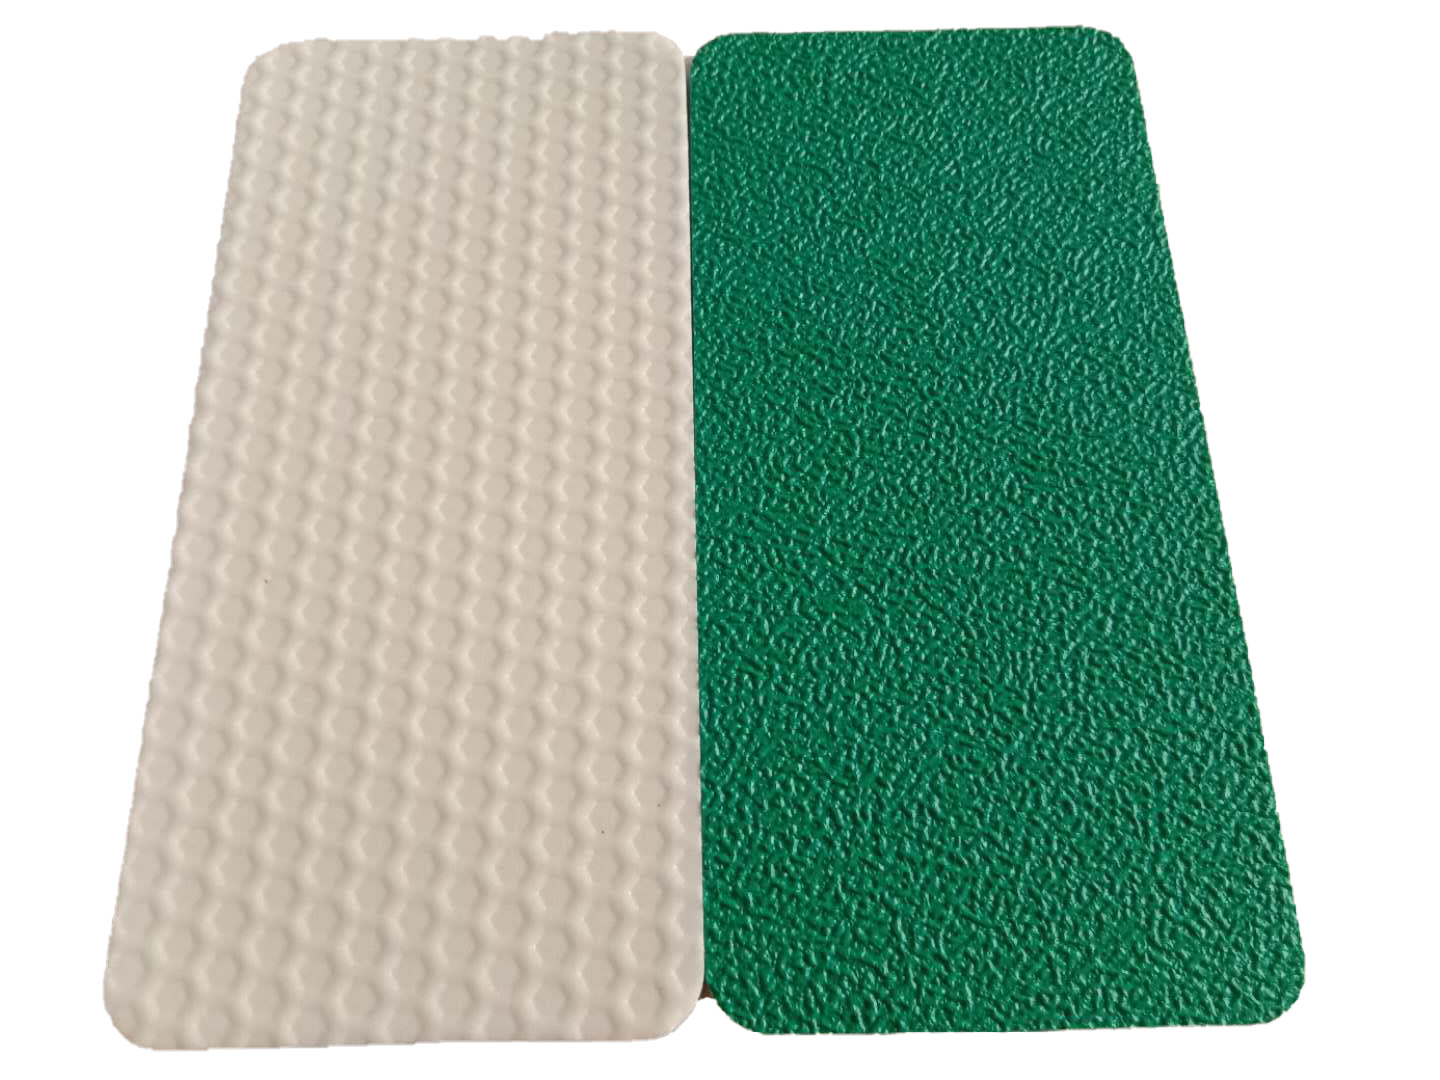 Hot sale PVC Flooring For Indoor Sports Court Badminton  Mat cushion type